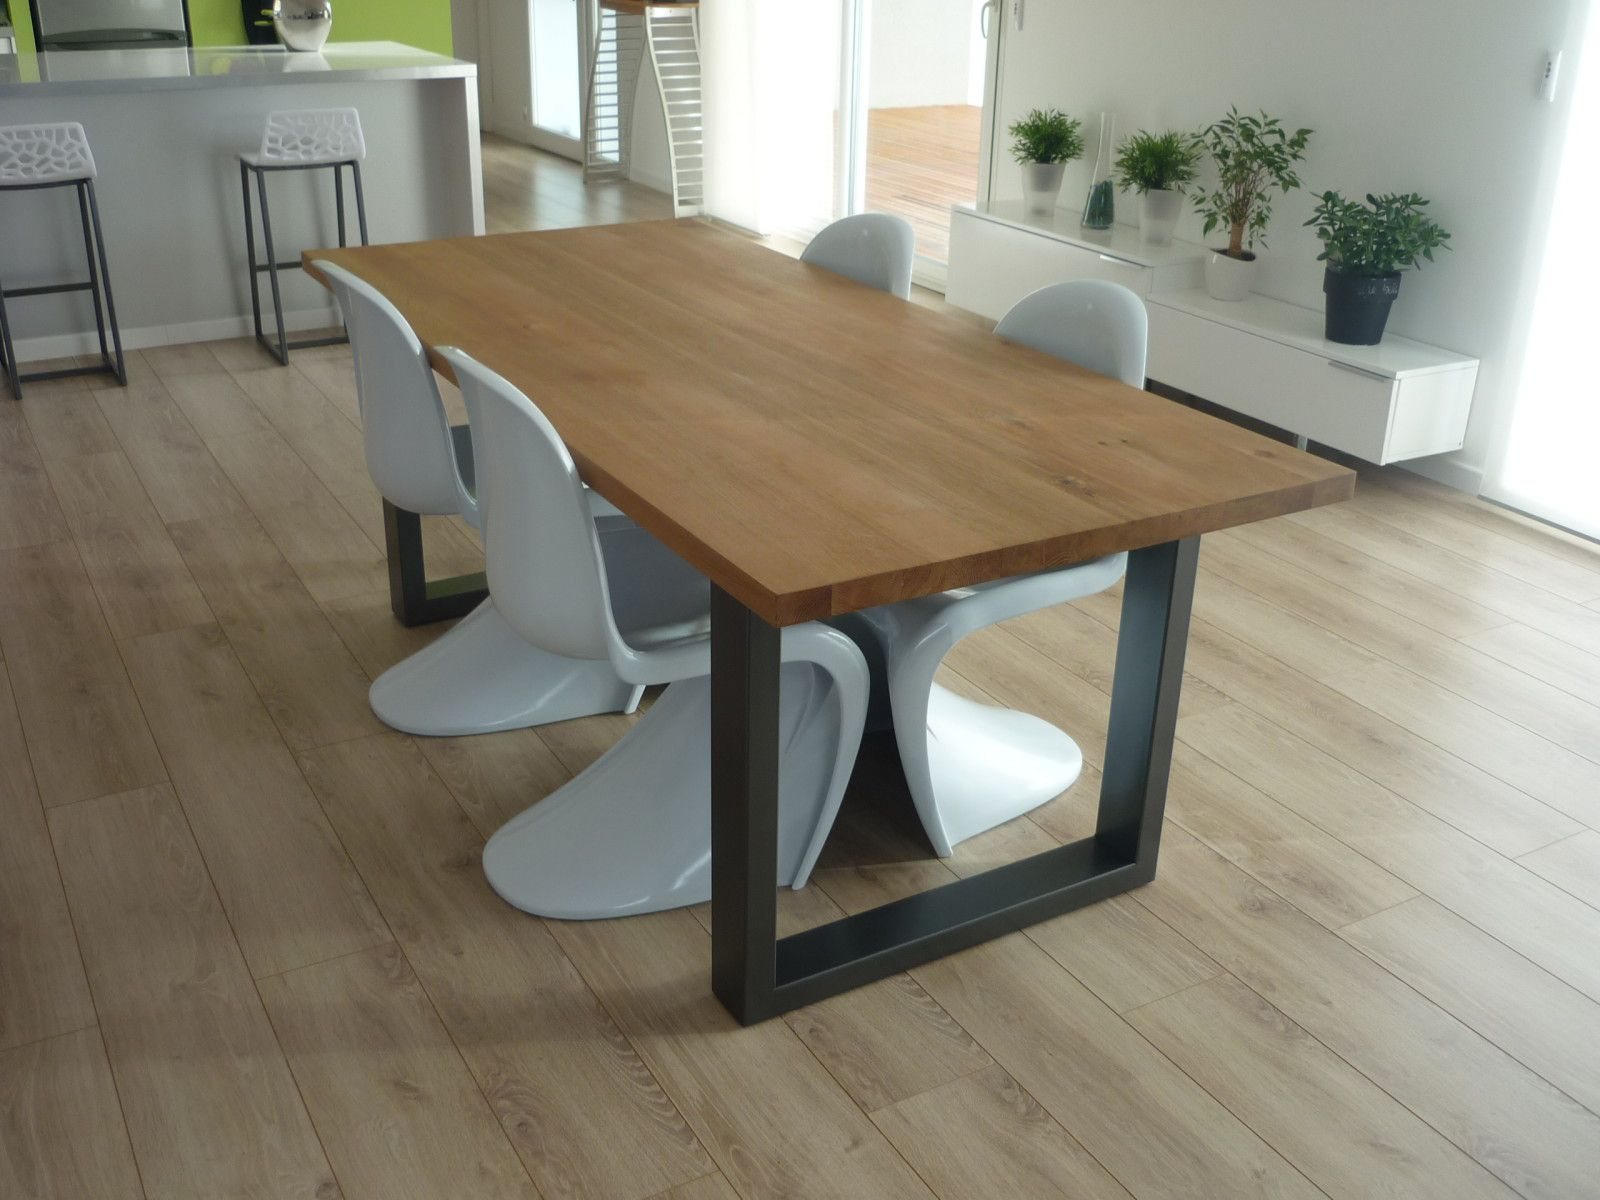 Album table de salle a manger menuiserie agencement design for Hauteur d une table a manger